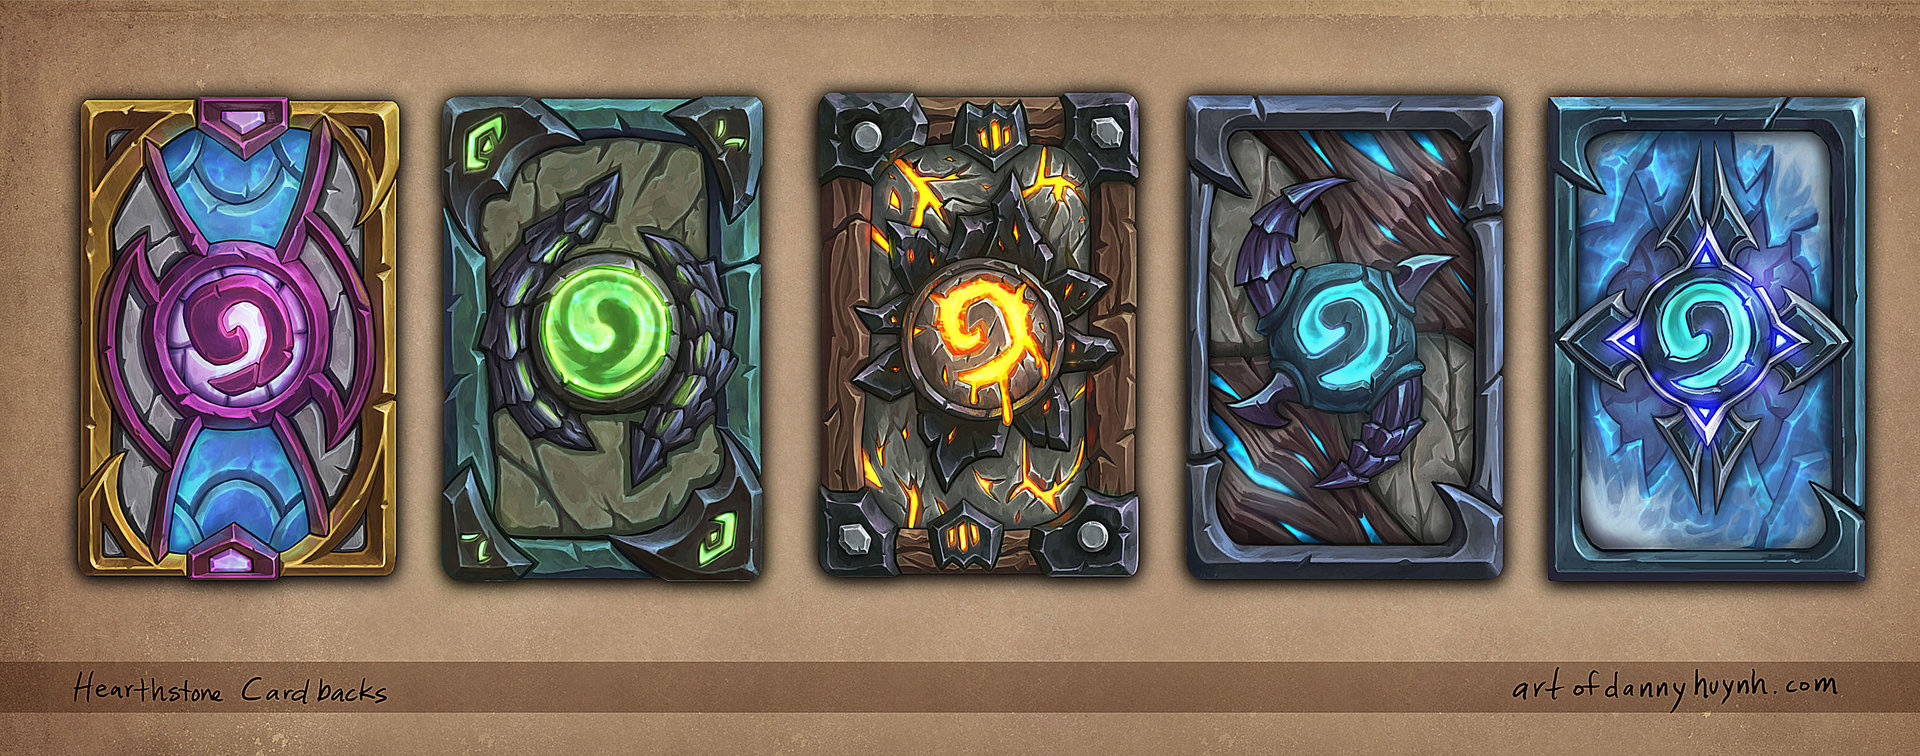 Some cardback designs for different themes. Check out the gif here. http://imgur.com/CgeLdPP